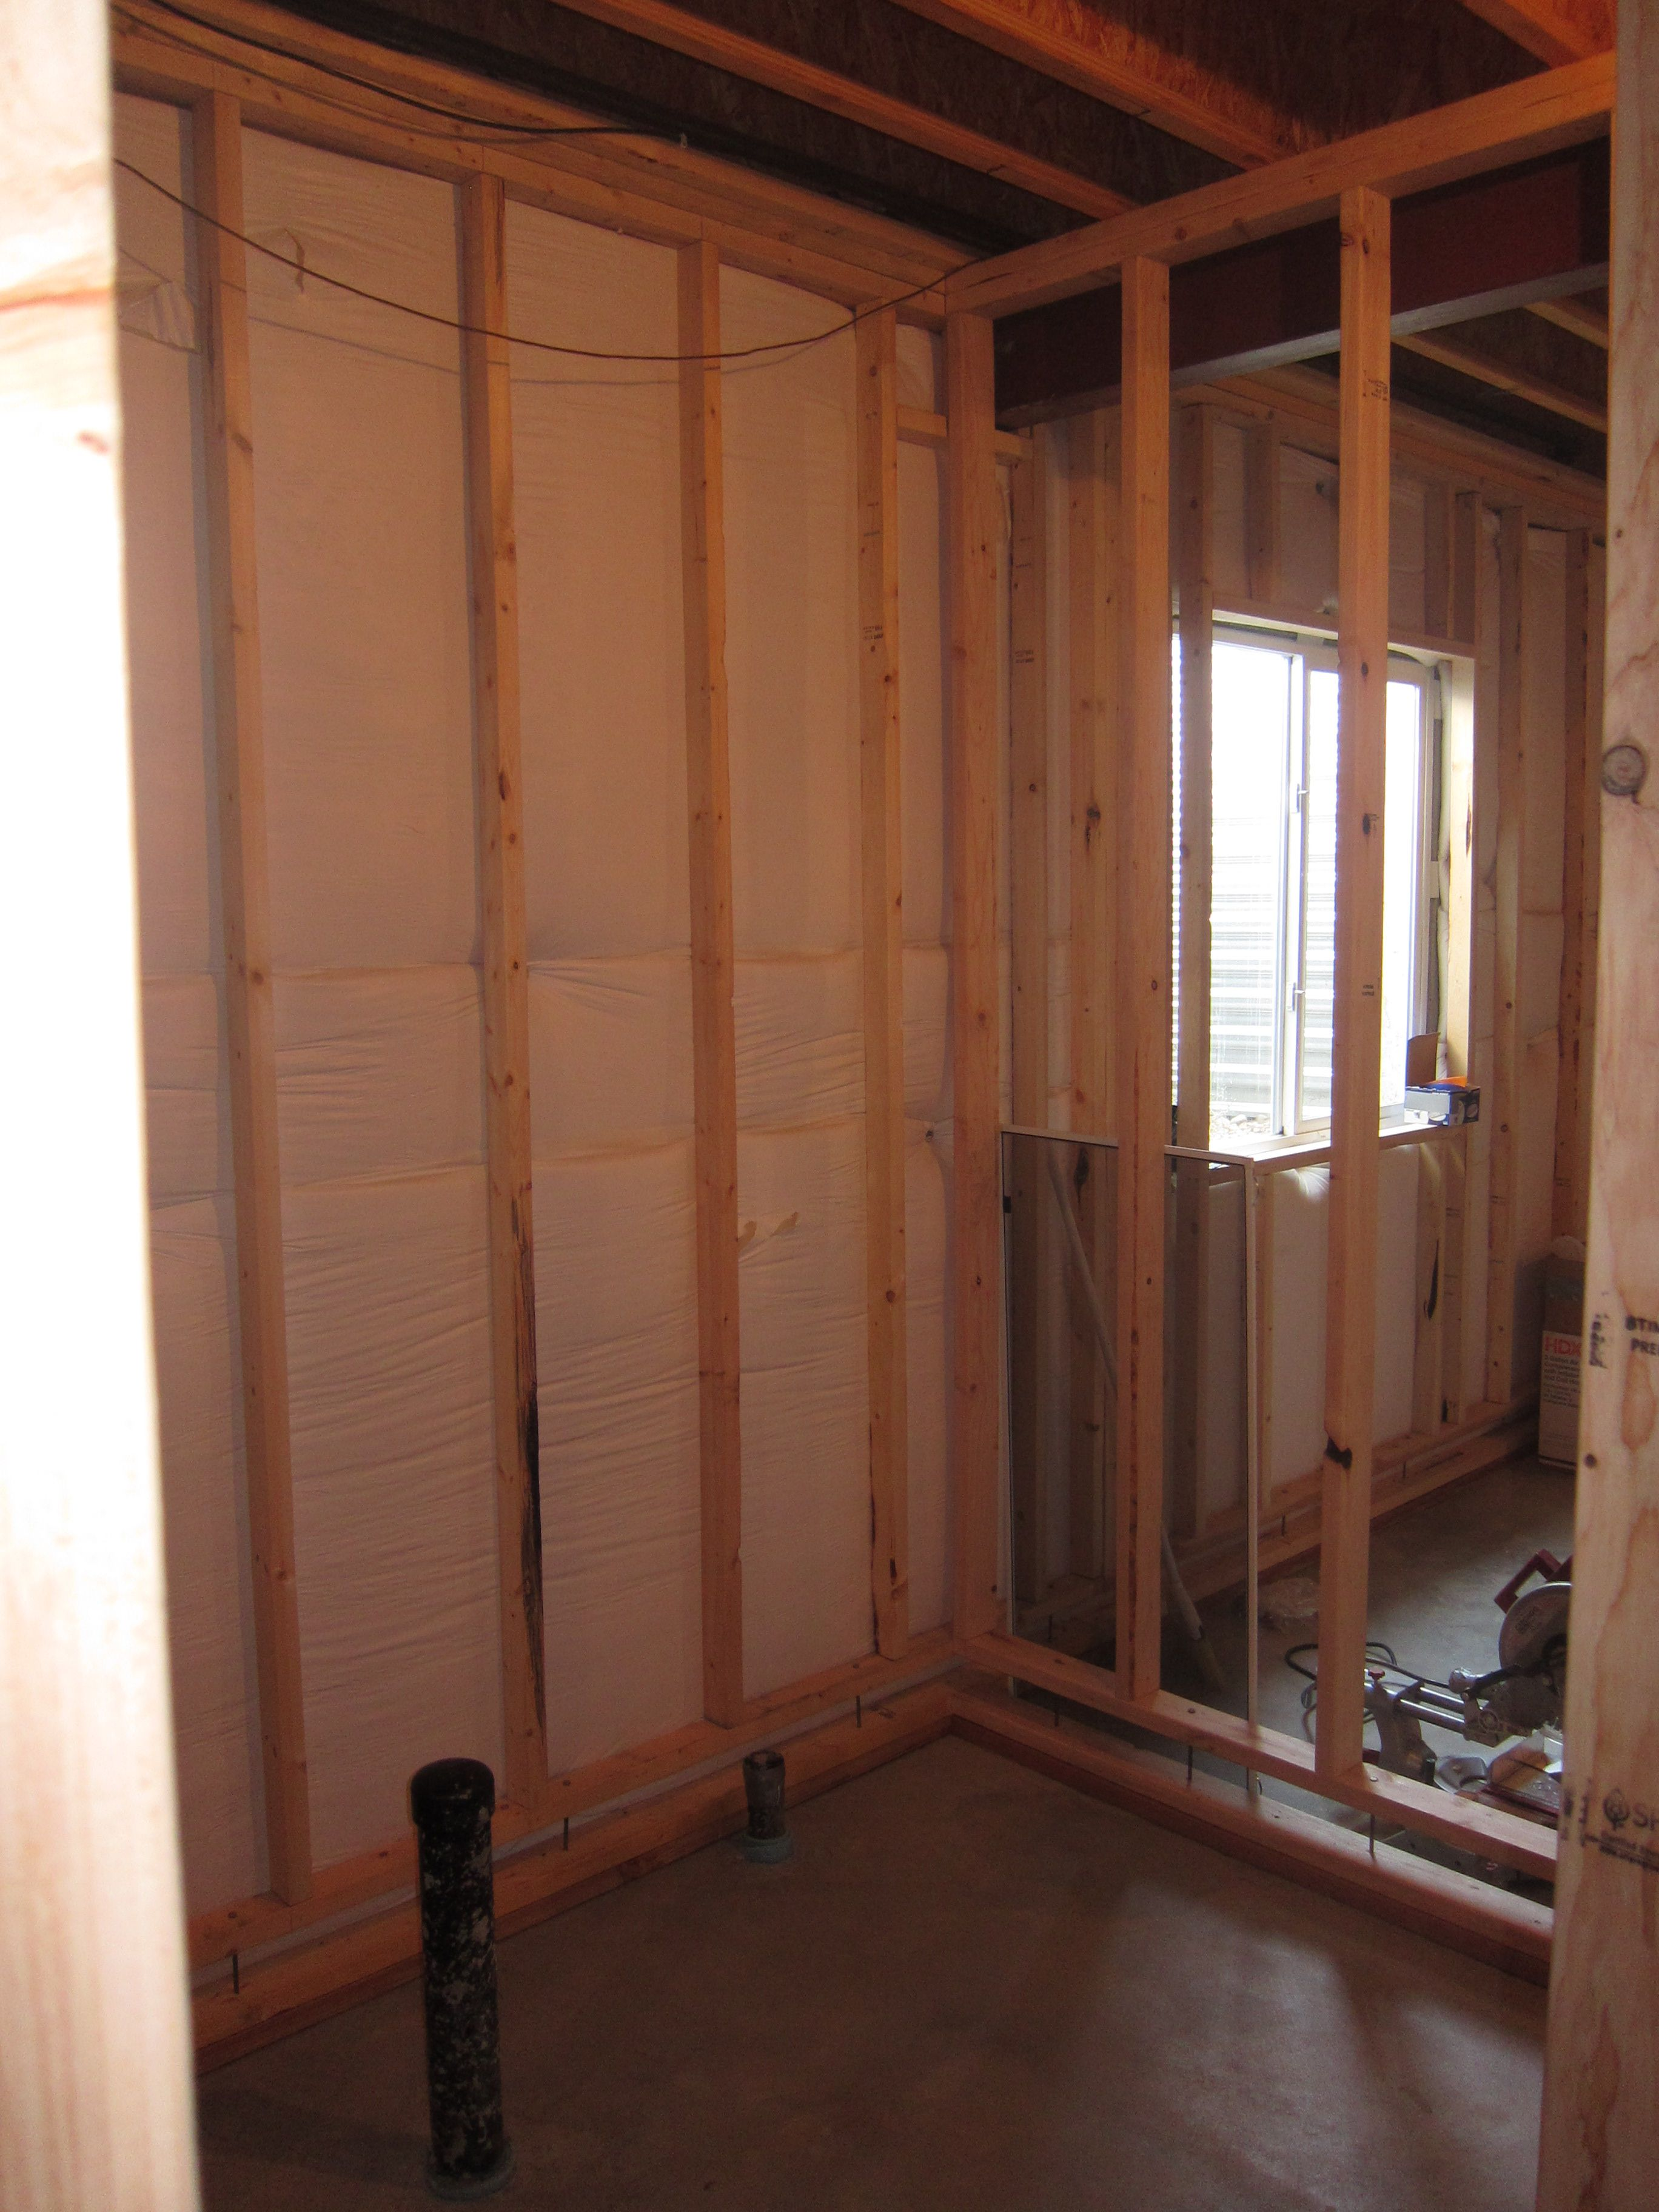 Basement Bathroom With Pex Plumbing And A Rainfall Showerhead   Framing  Stage